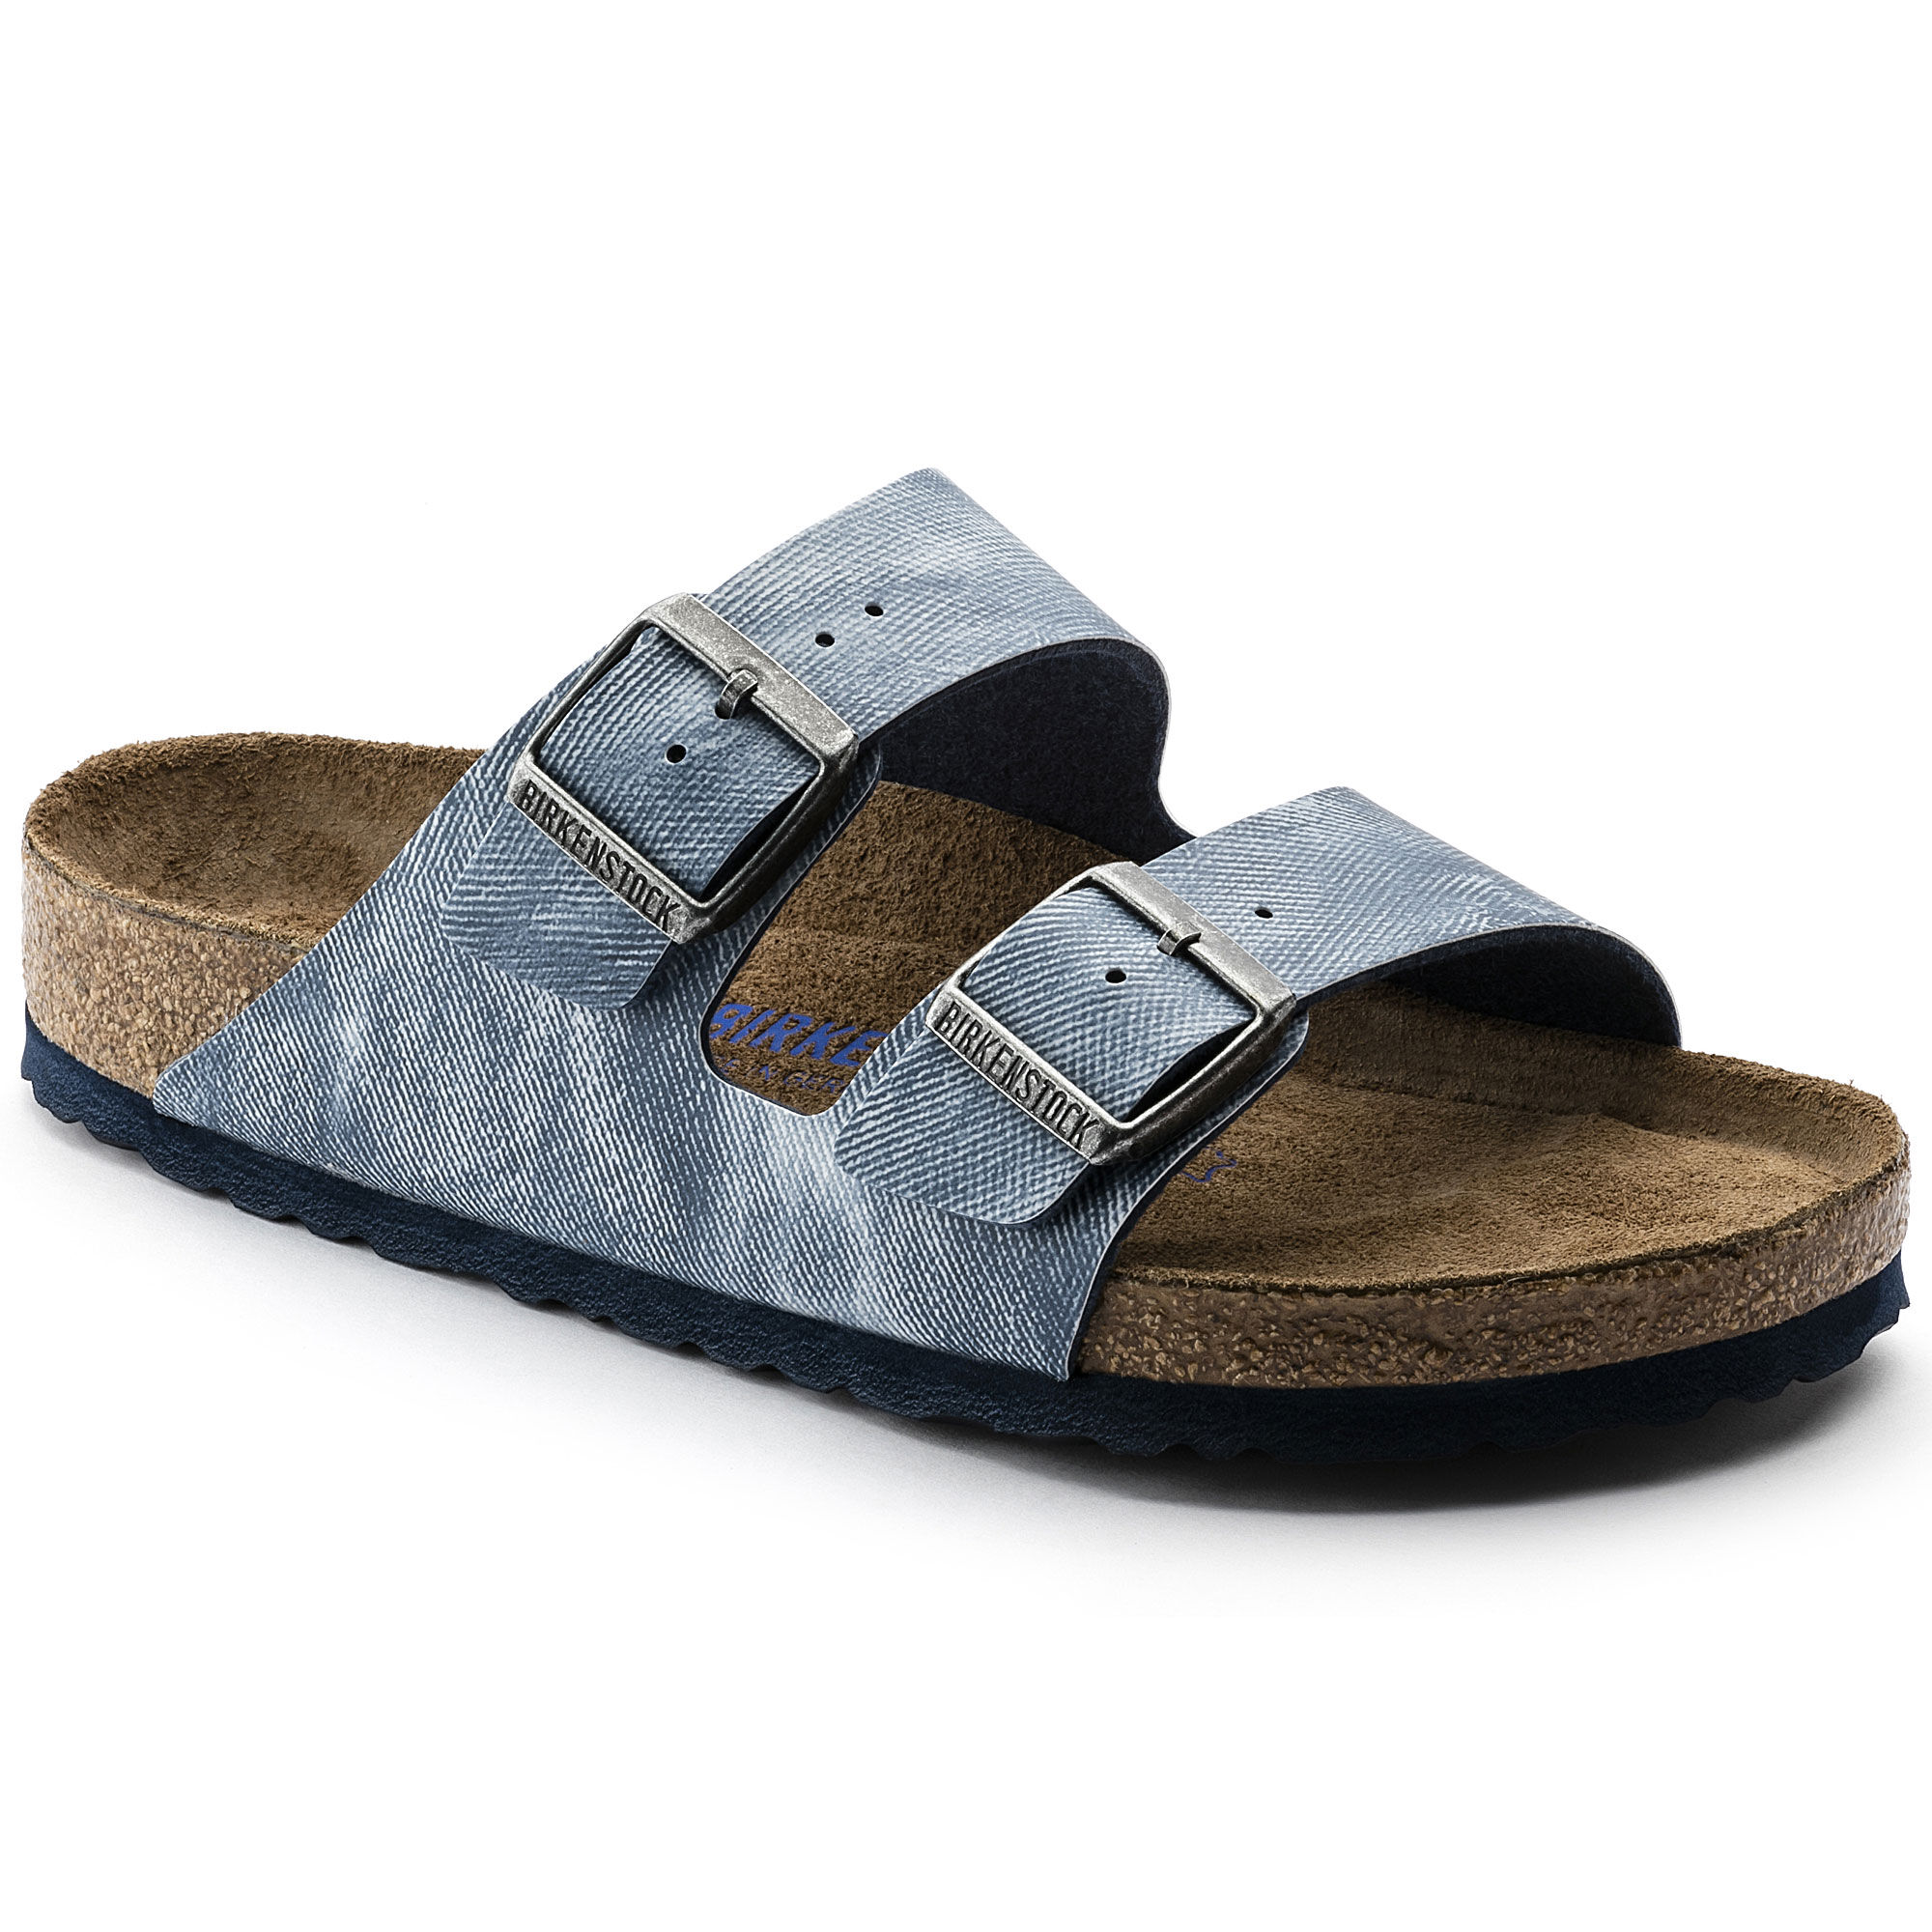 Arizona Birko Flor Soft Footbed Jeans Washed Out Blue